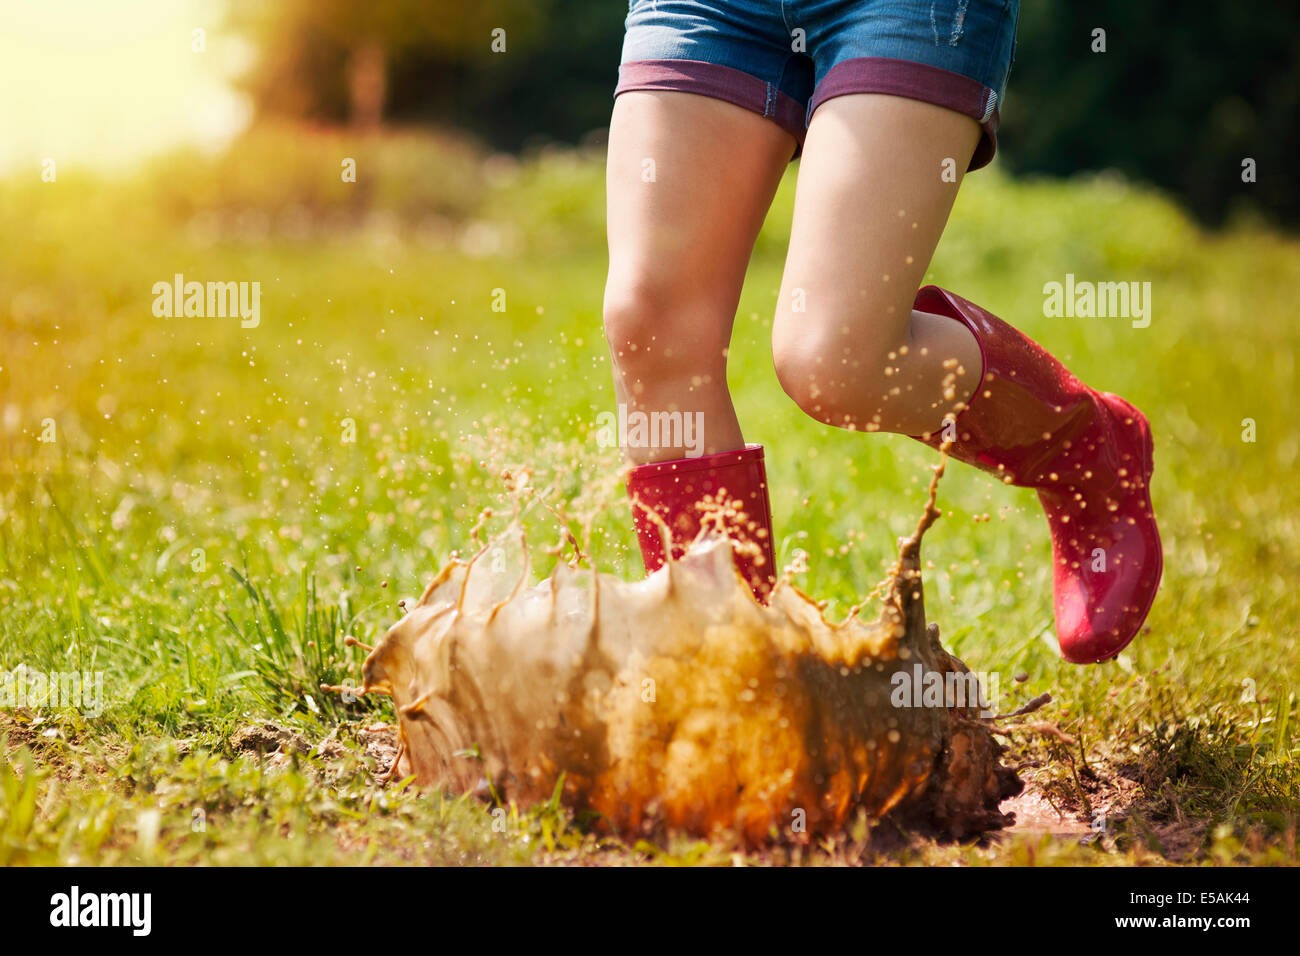 Woman have fun jumping in puddle, Debica, Poland - Stock Image